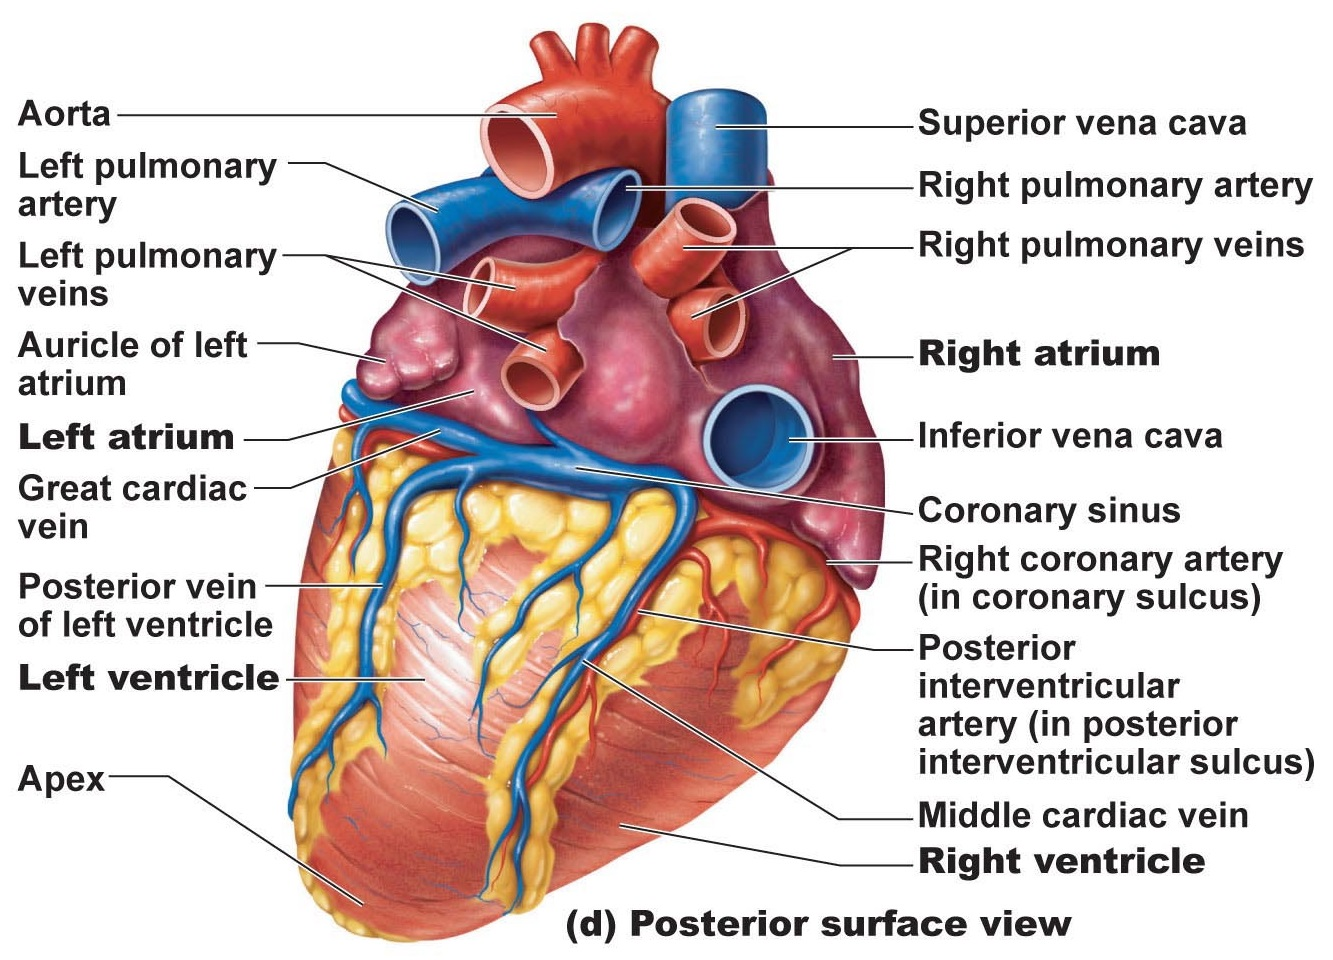 Human body organ systems an orientation anatomy physiology heart anatomy chambers valves and vessels ccuart Gallery